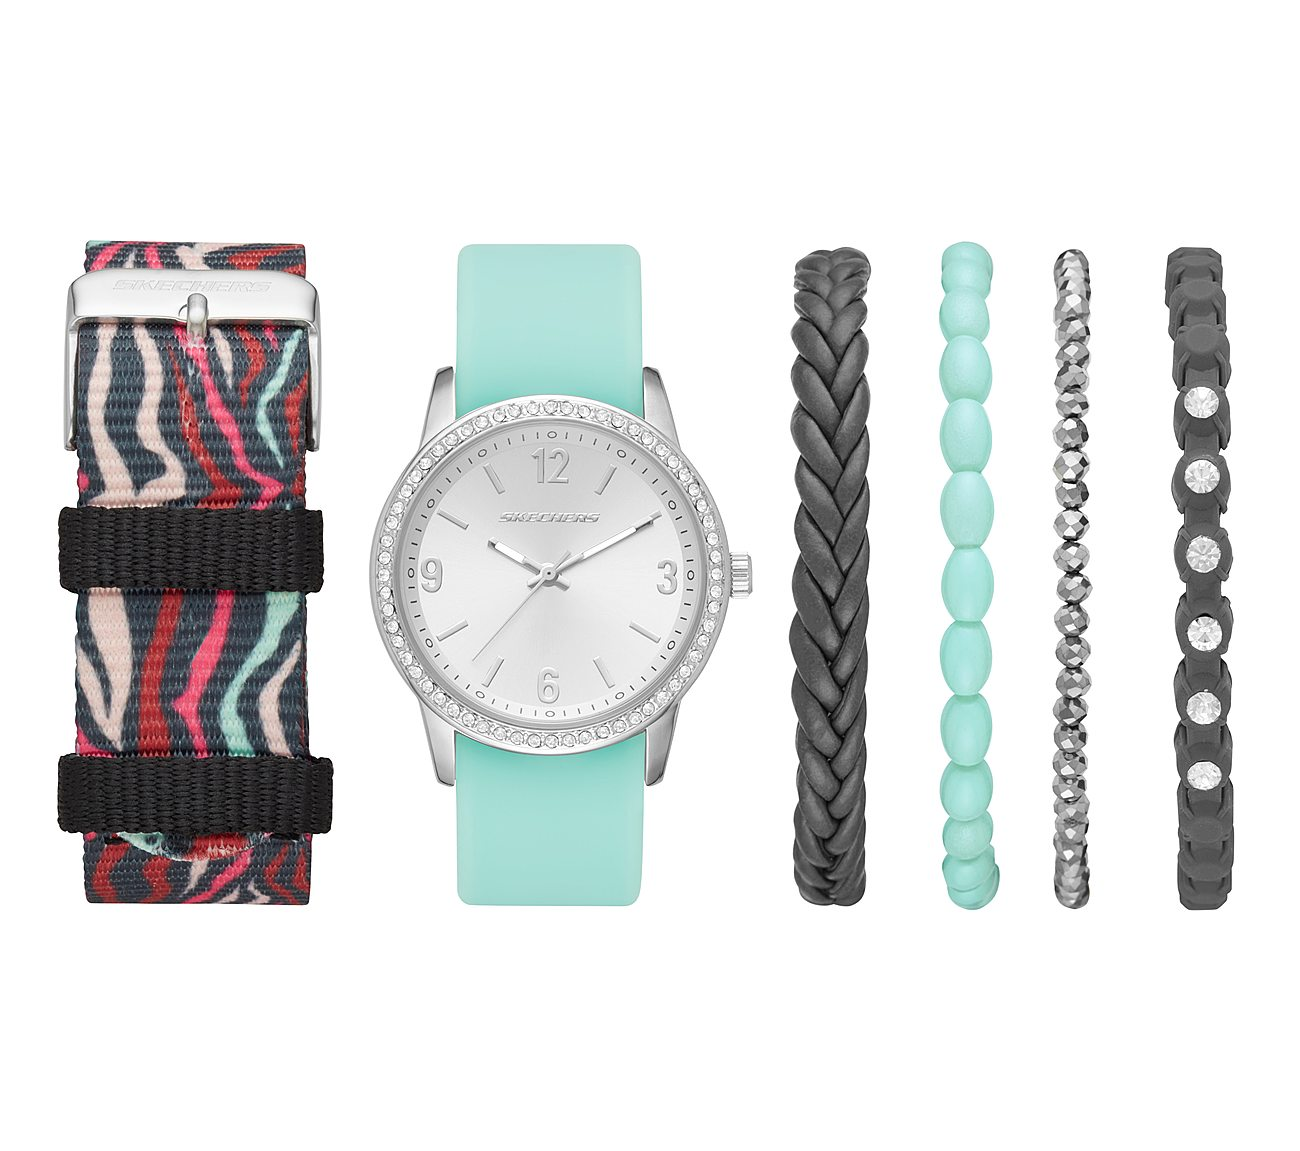 Fashion Watch Gift Set